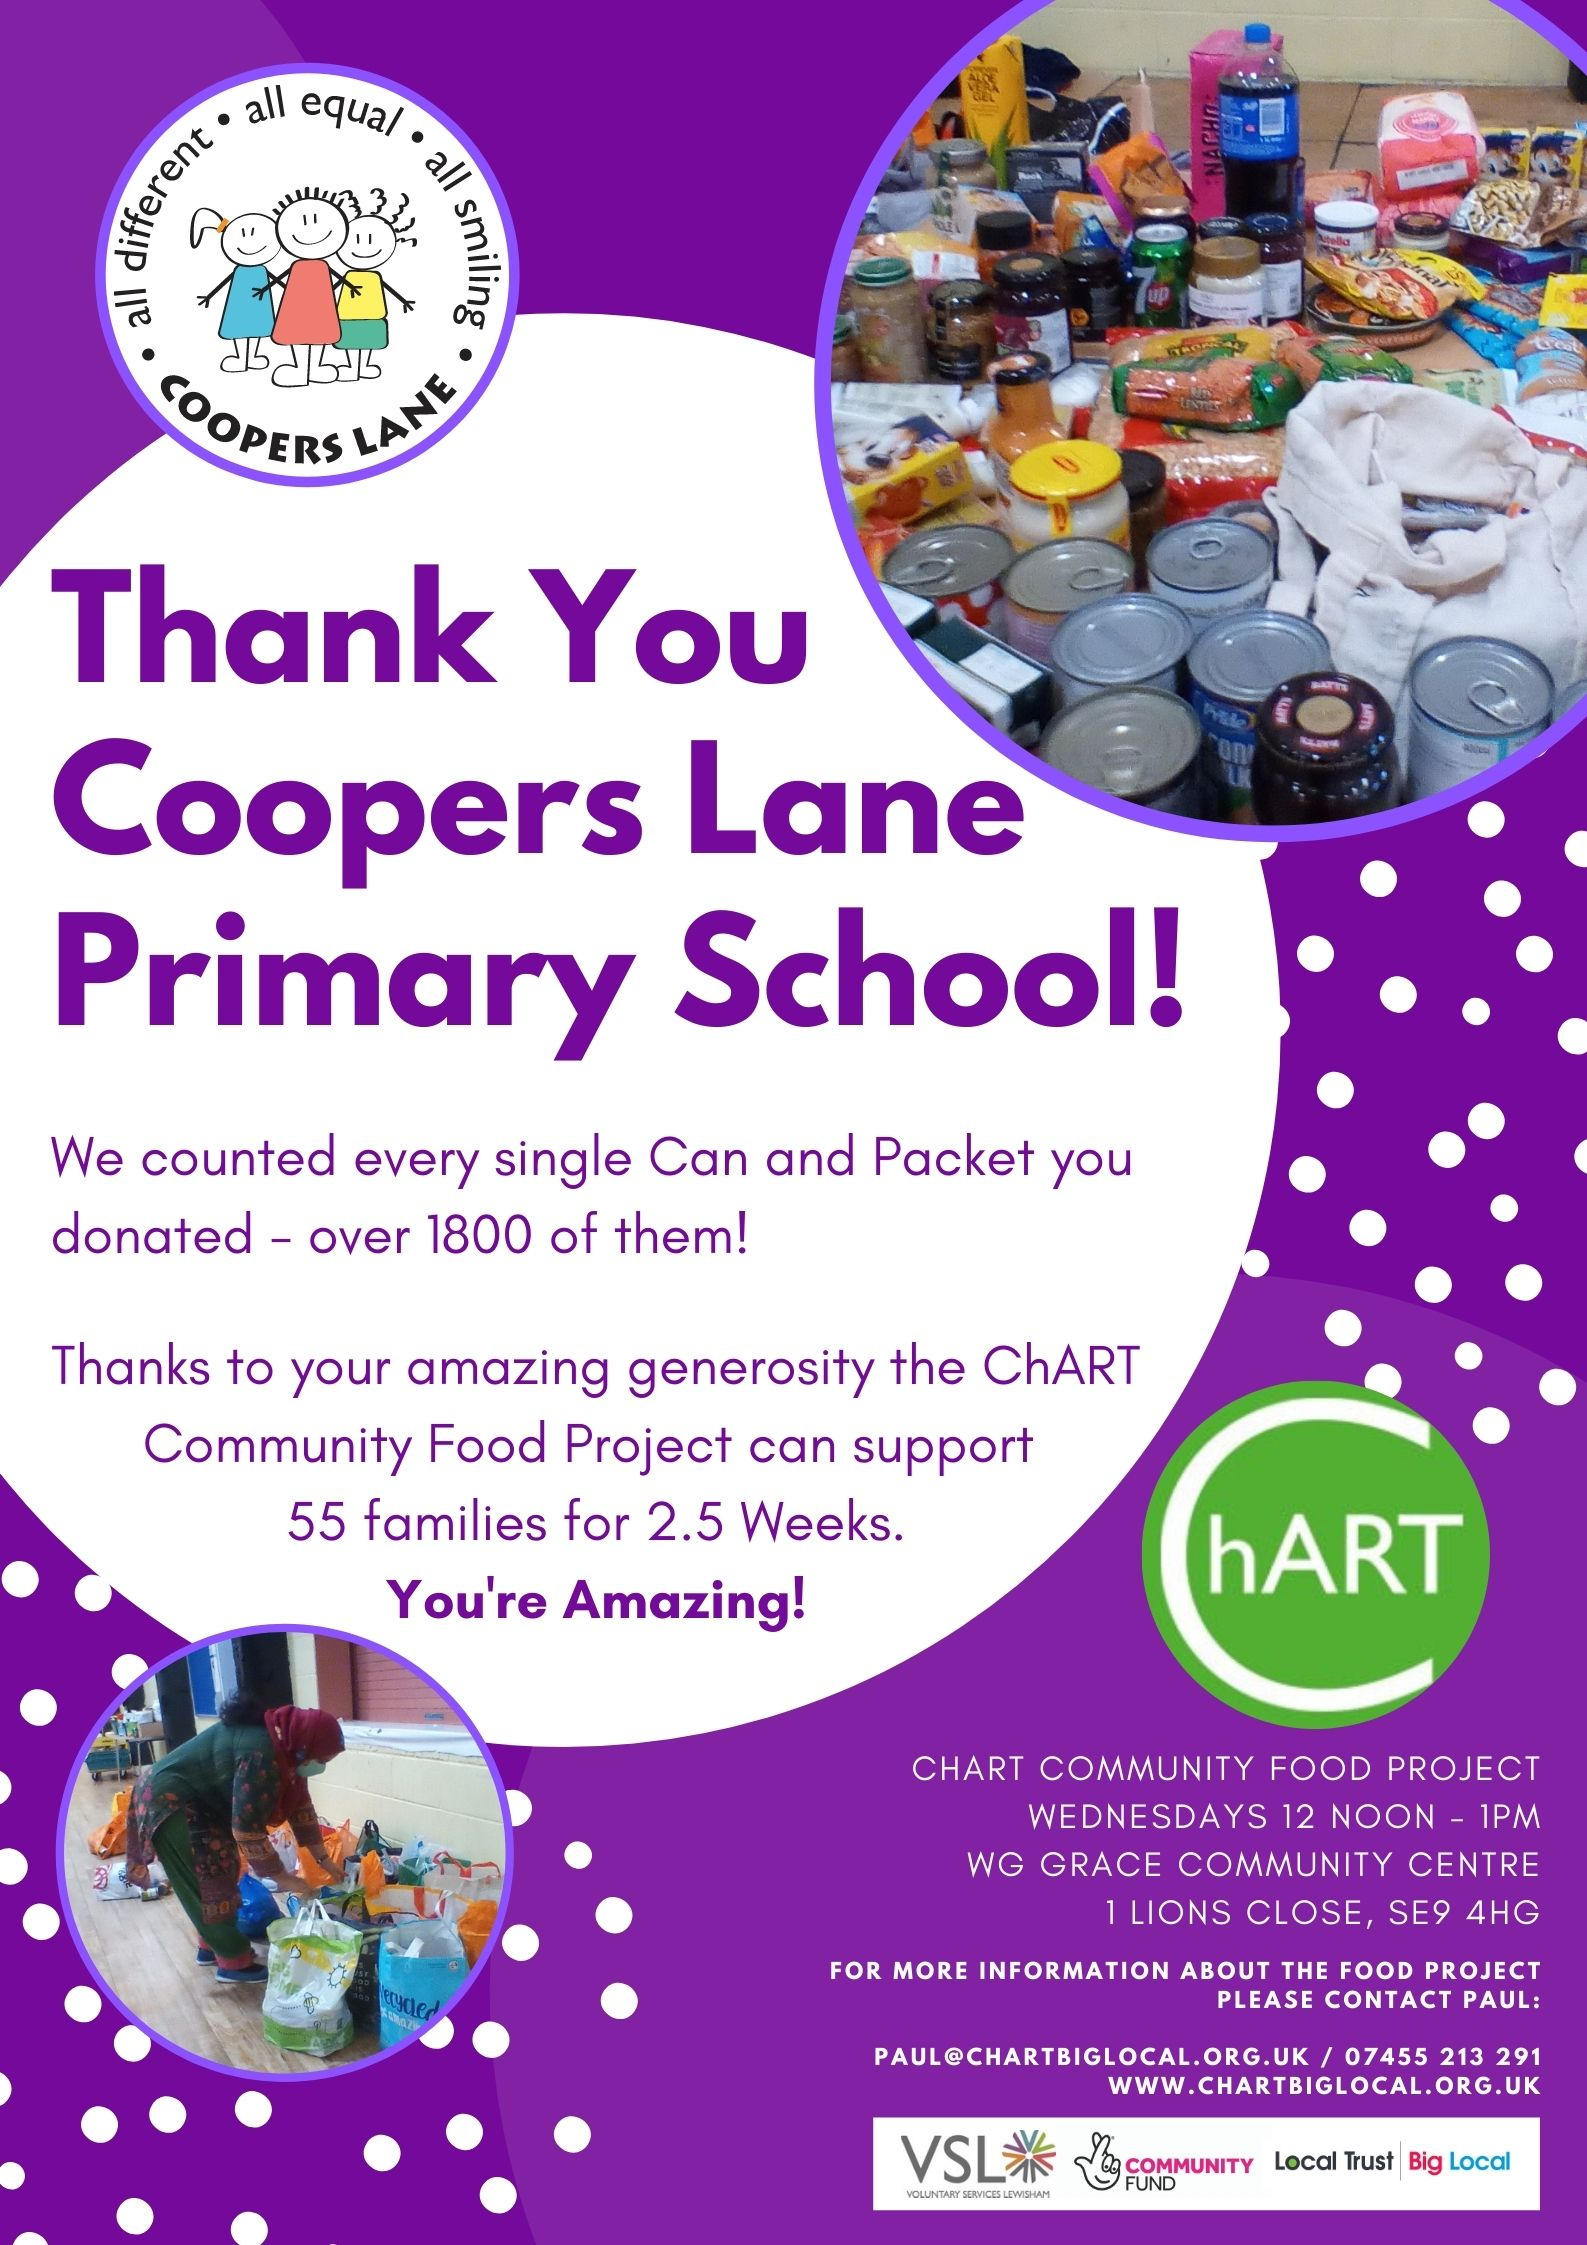 "Poster with purple background, photographs in circles show large quantity of food doantions in cans and packets. Purple text in white circle reads ""Thank You Coopers Lane Primary School! We counted every single can and packet you donated - over 1800 of them! Thanks to you amazing generosity the ChART Community Food Project can support 55 families for 2.5 weeks! You're Amazing!"